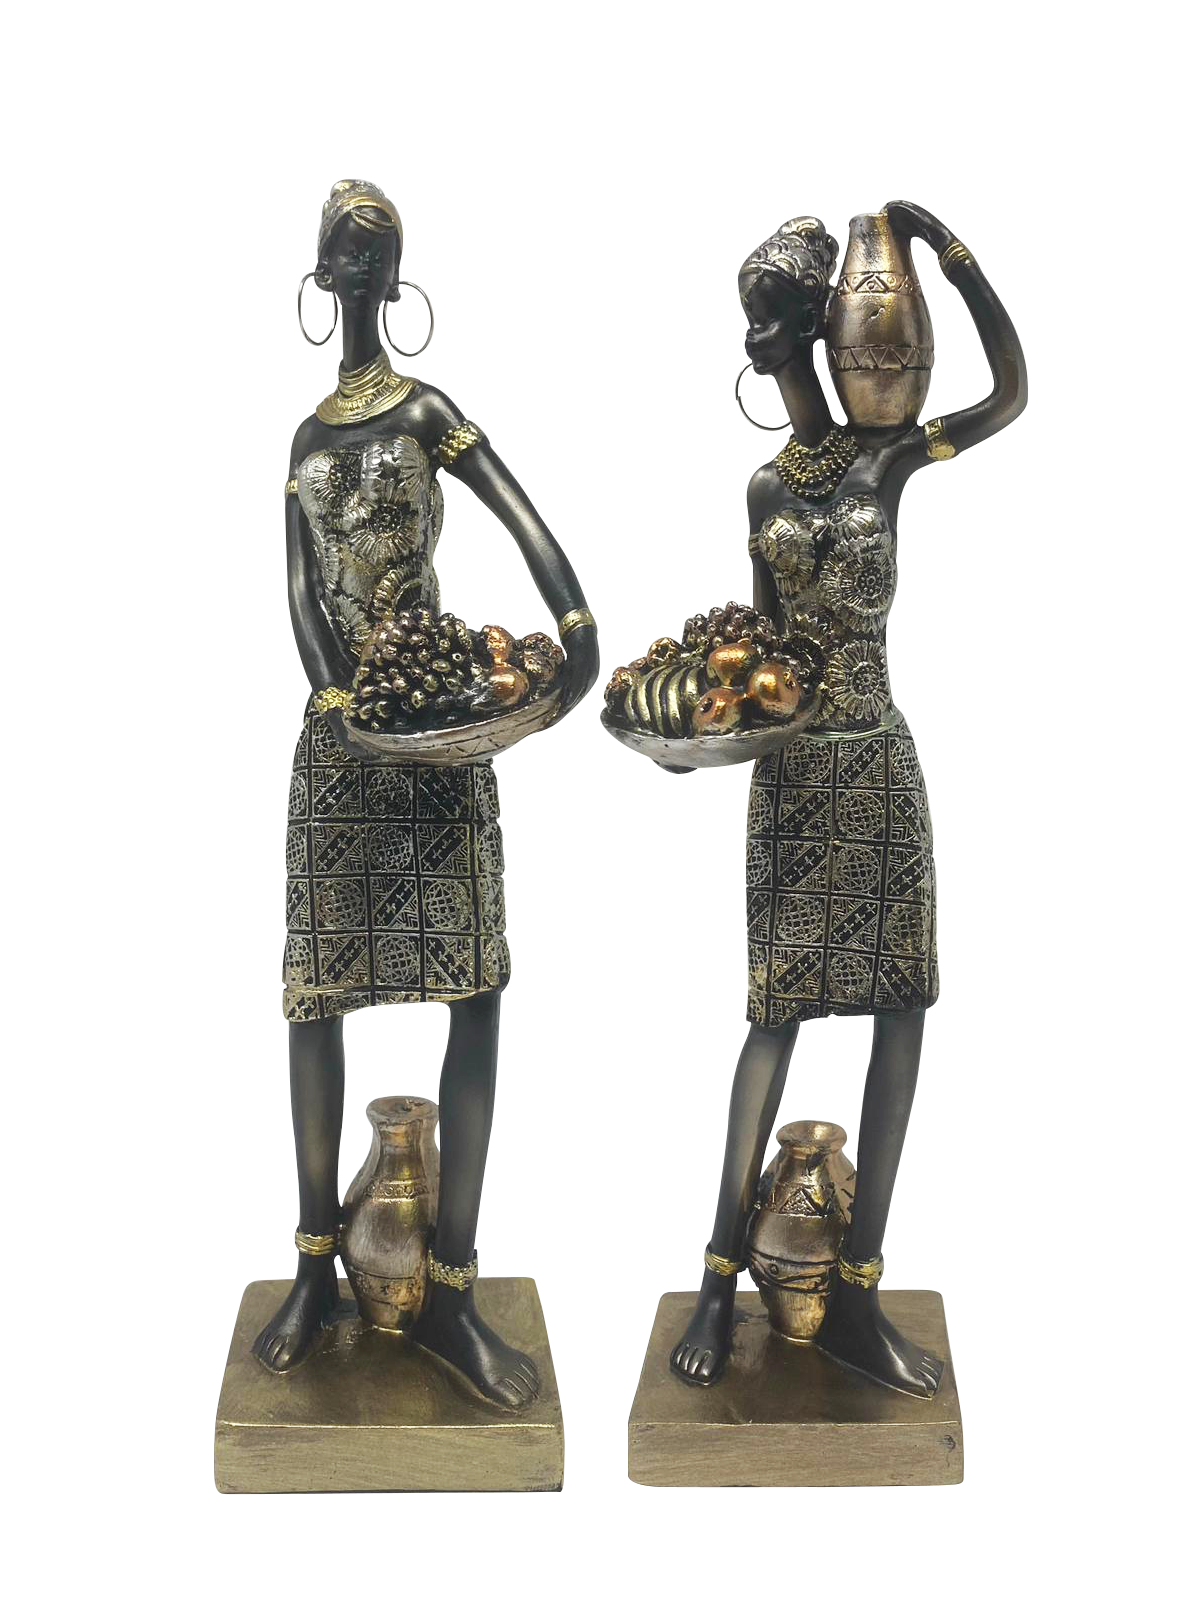 AFRICAN WOMEN STATUES STYLE 2 (SET OF 2)